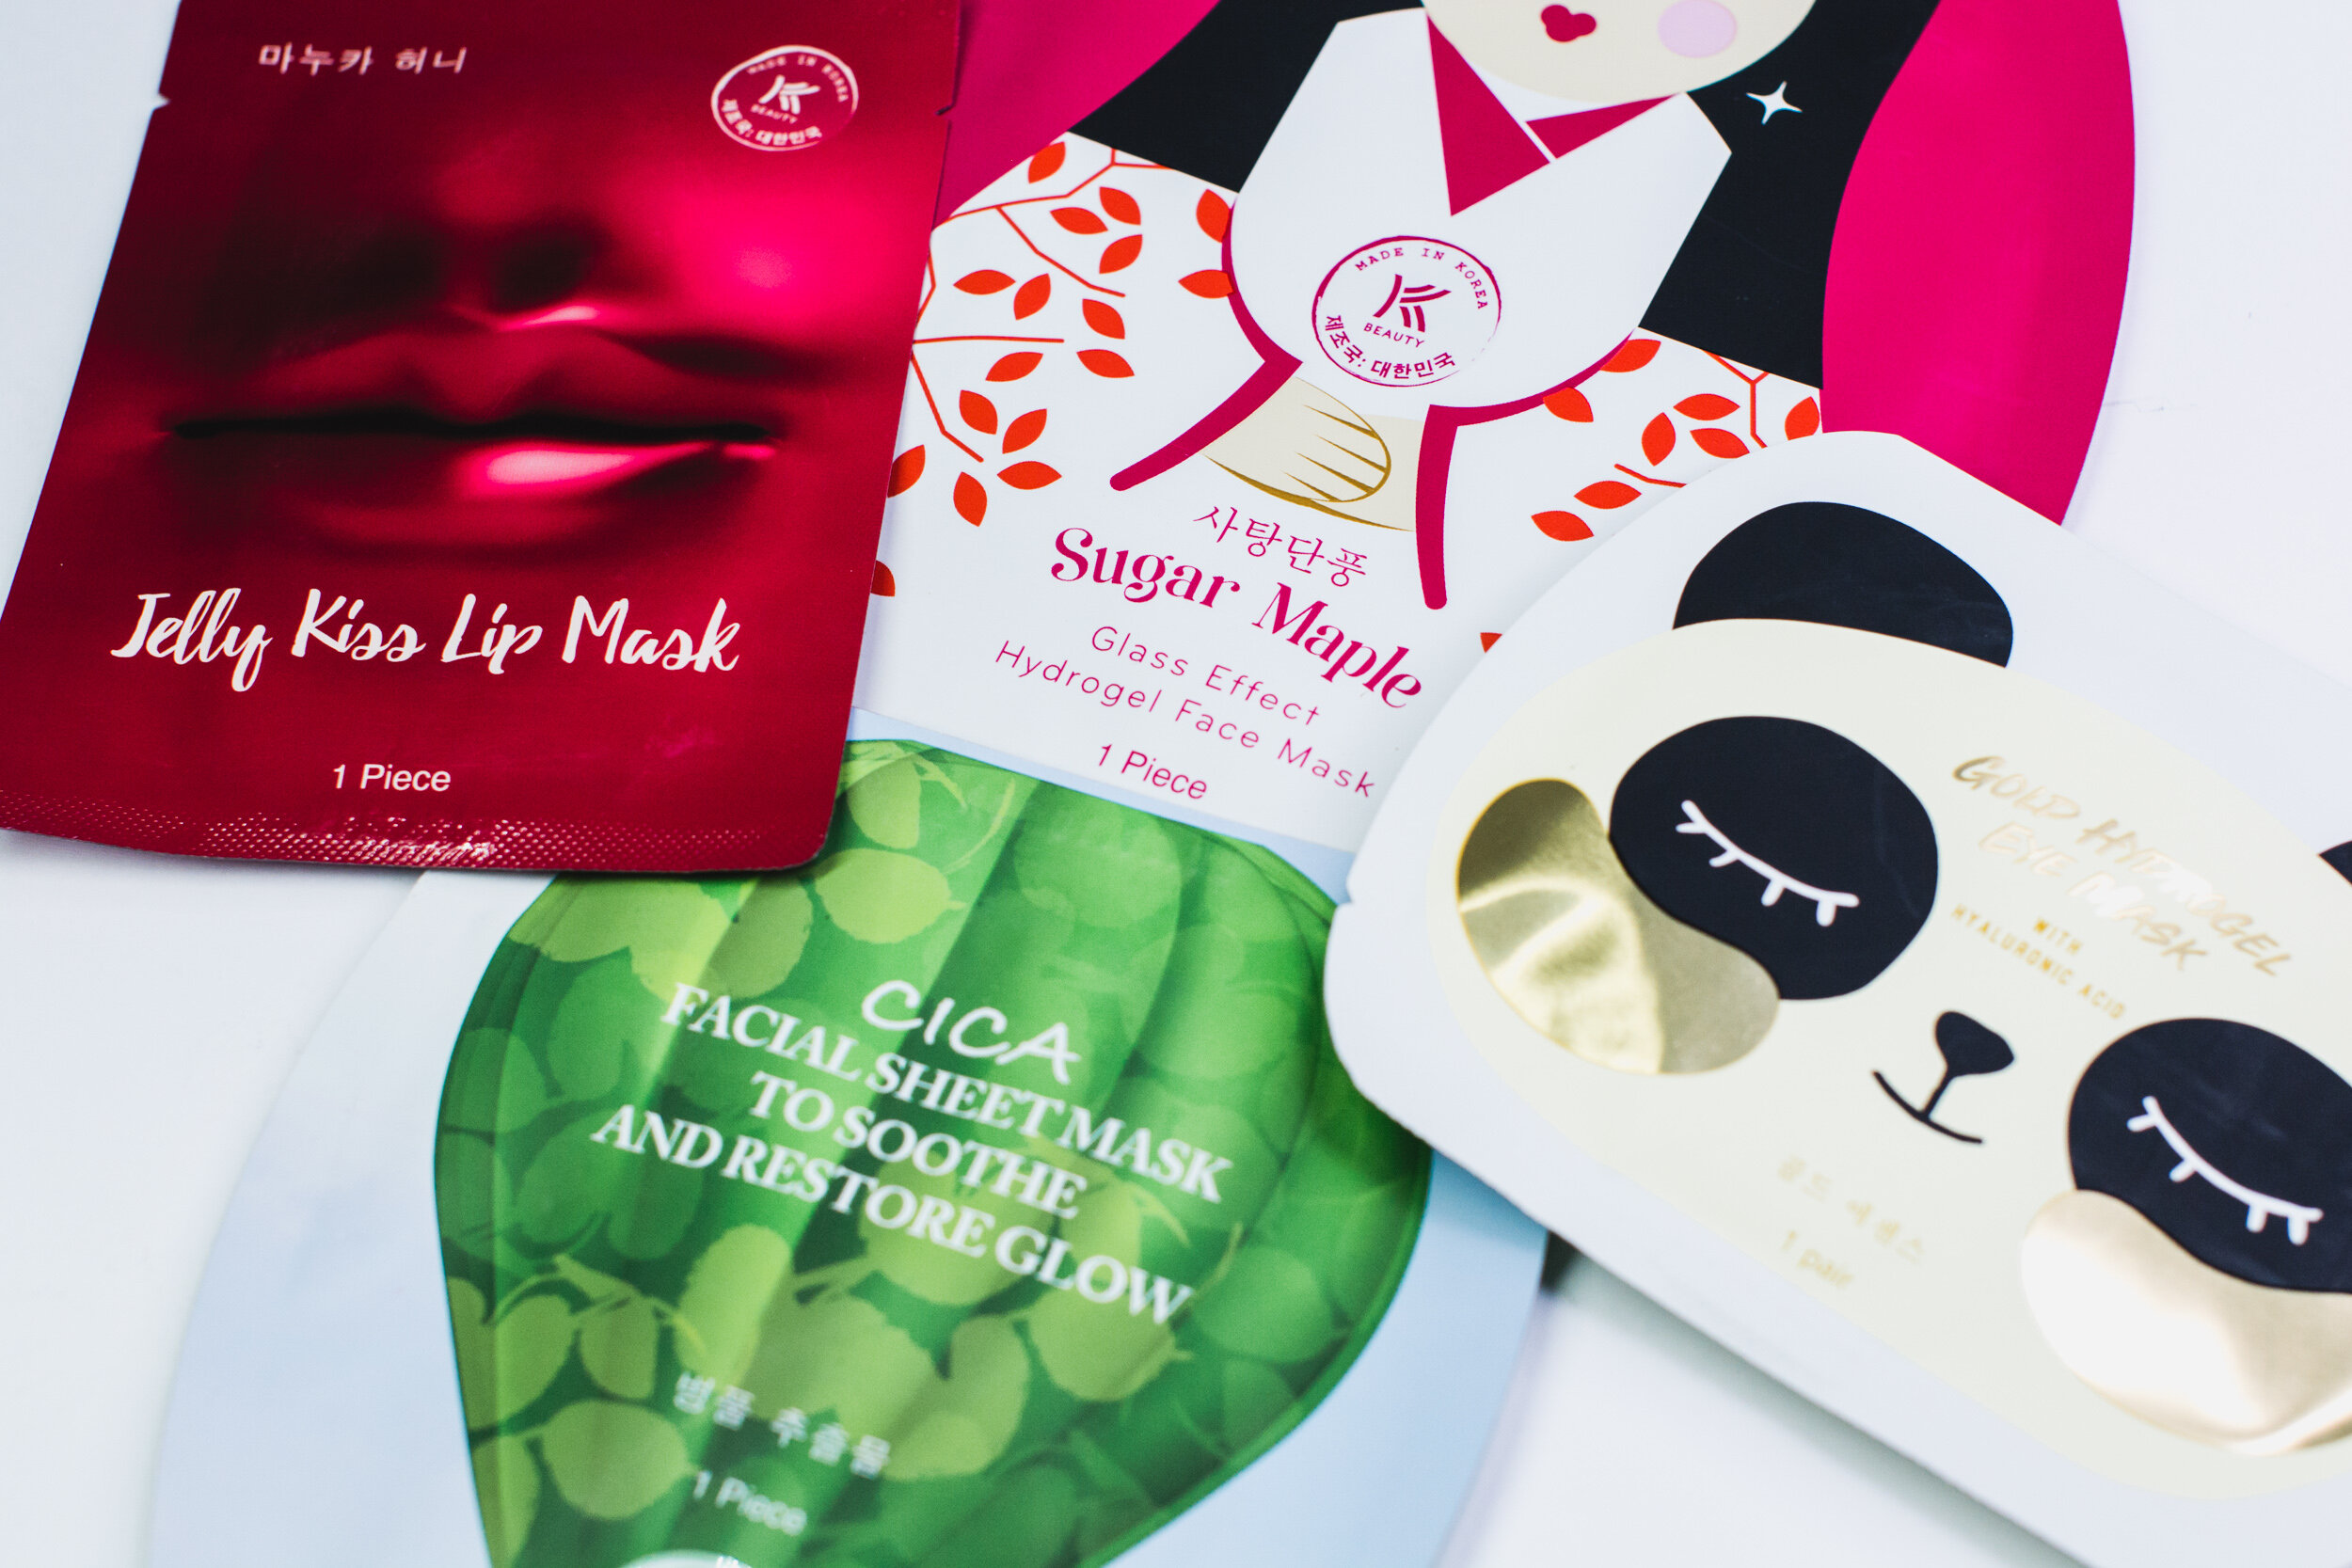 avon-beauty_korean-collection_cushion_gradient-lipsticks_sheet-mask_eye-mask_lip-mask_review-philippines_2019-9.JPG